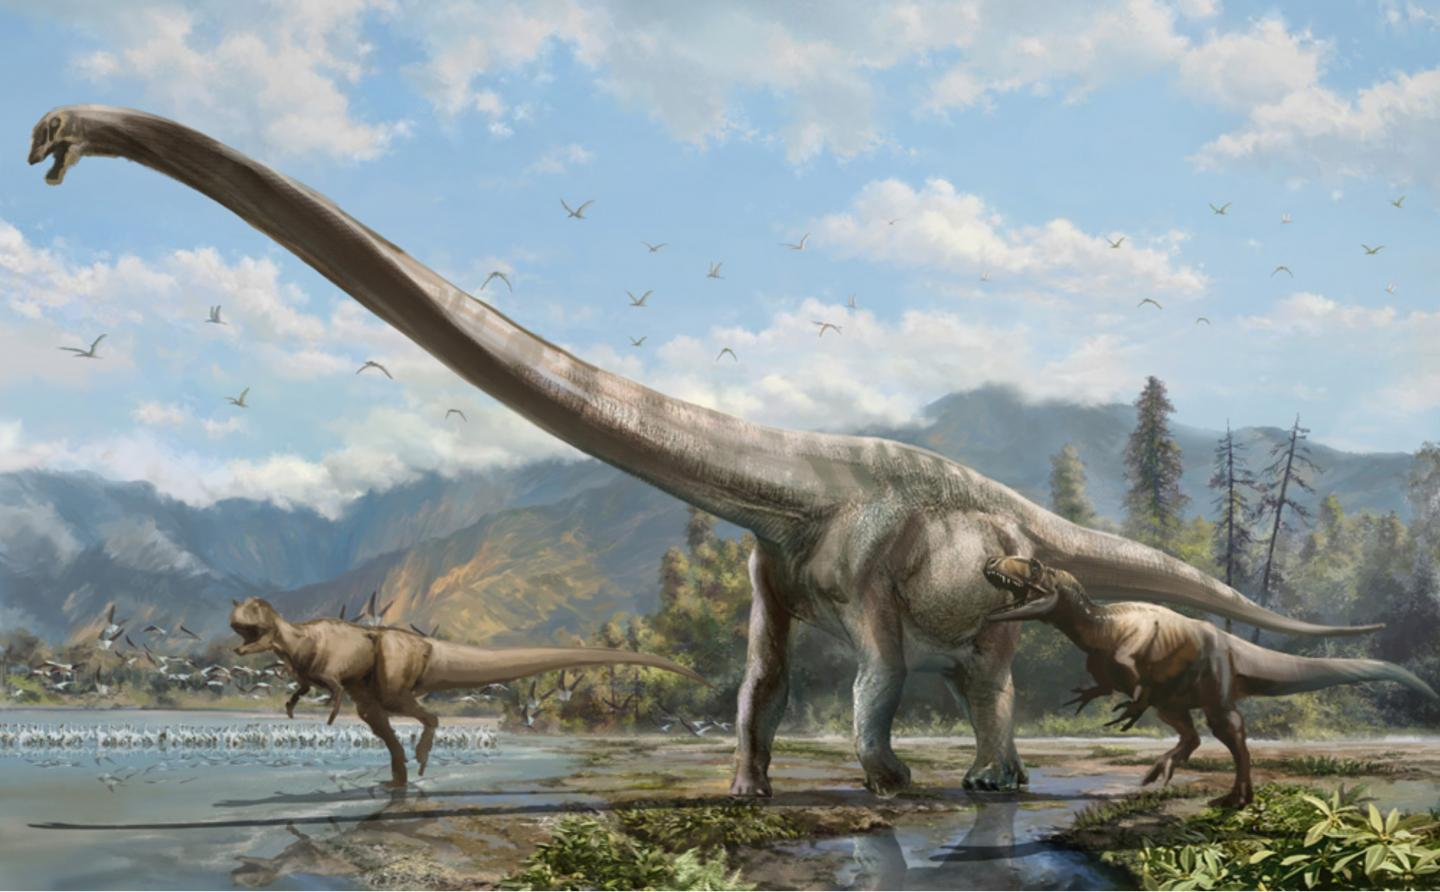 Qijianglong: Long-necked Dragon Roamed China 160 Million Years Ago